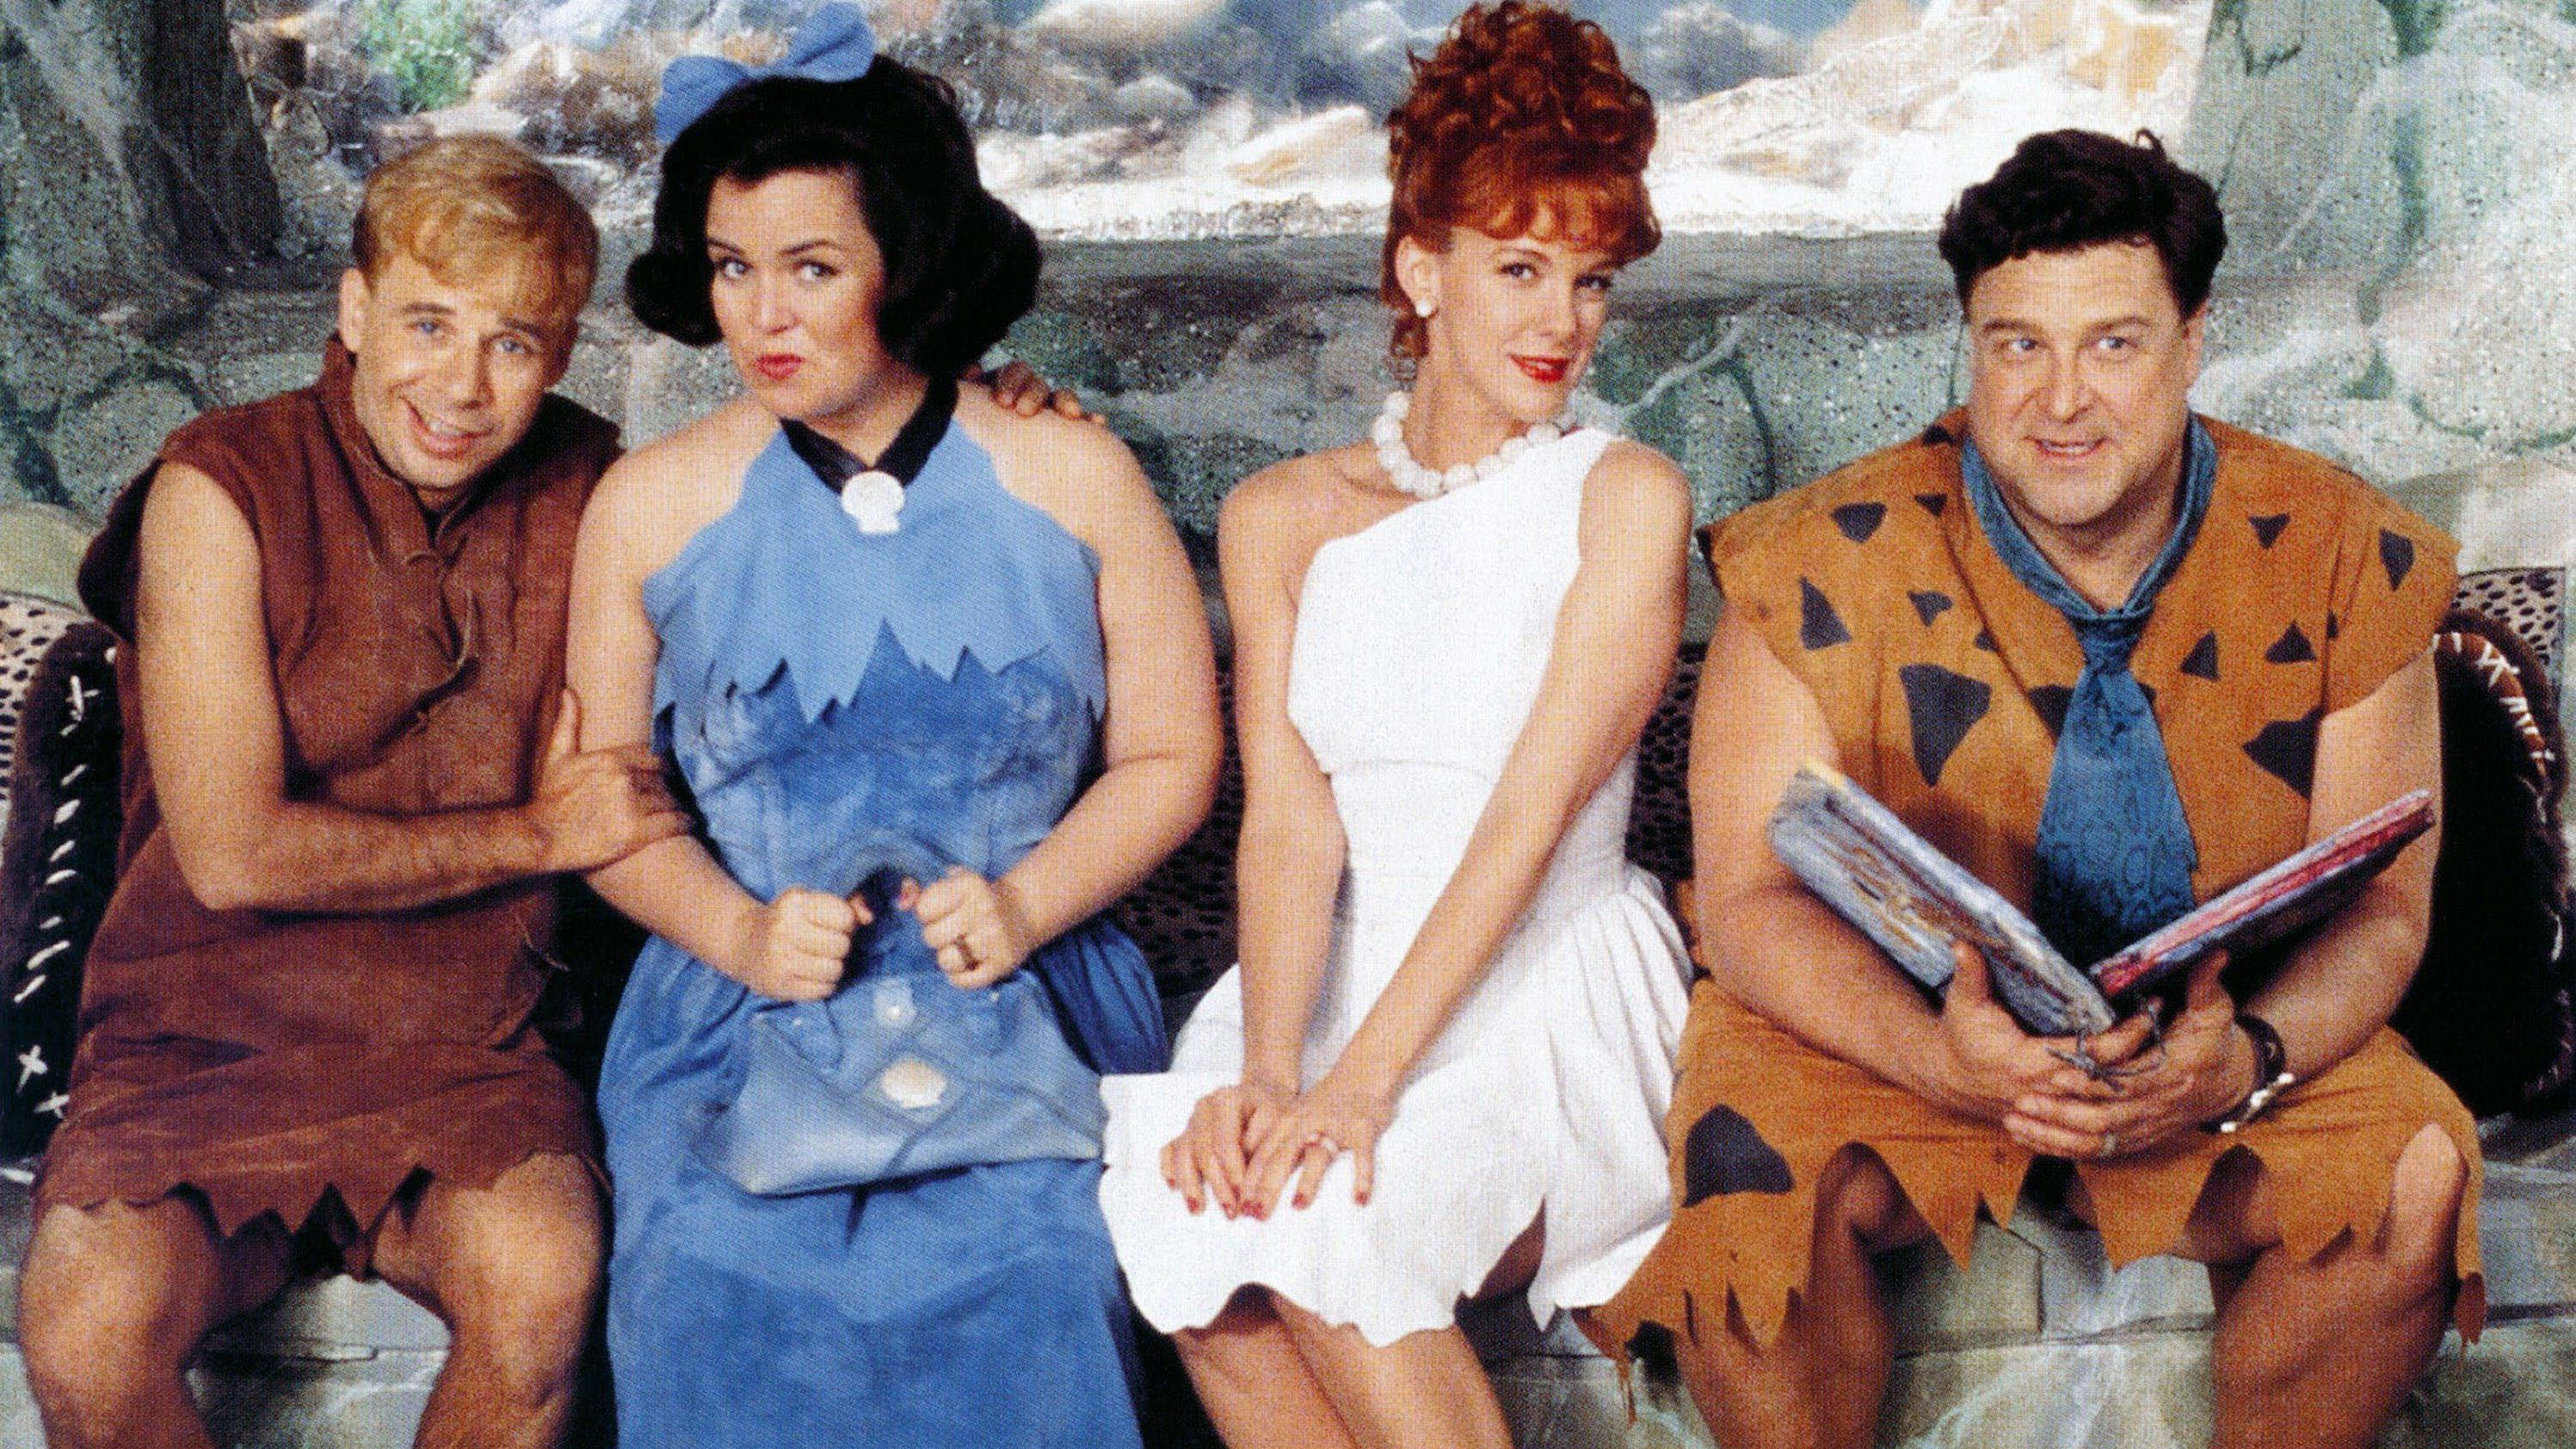 THE FLINTSTONES, from left: Rick Moranis, Rosie O'Donnell, Elizabeth Perkins, John Goodman, 1994, © Universal/courtesy Everett collection